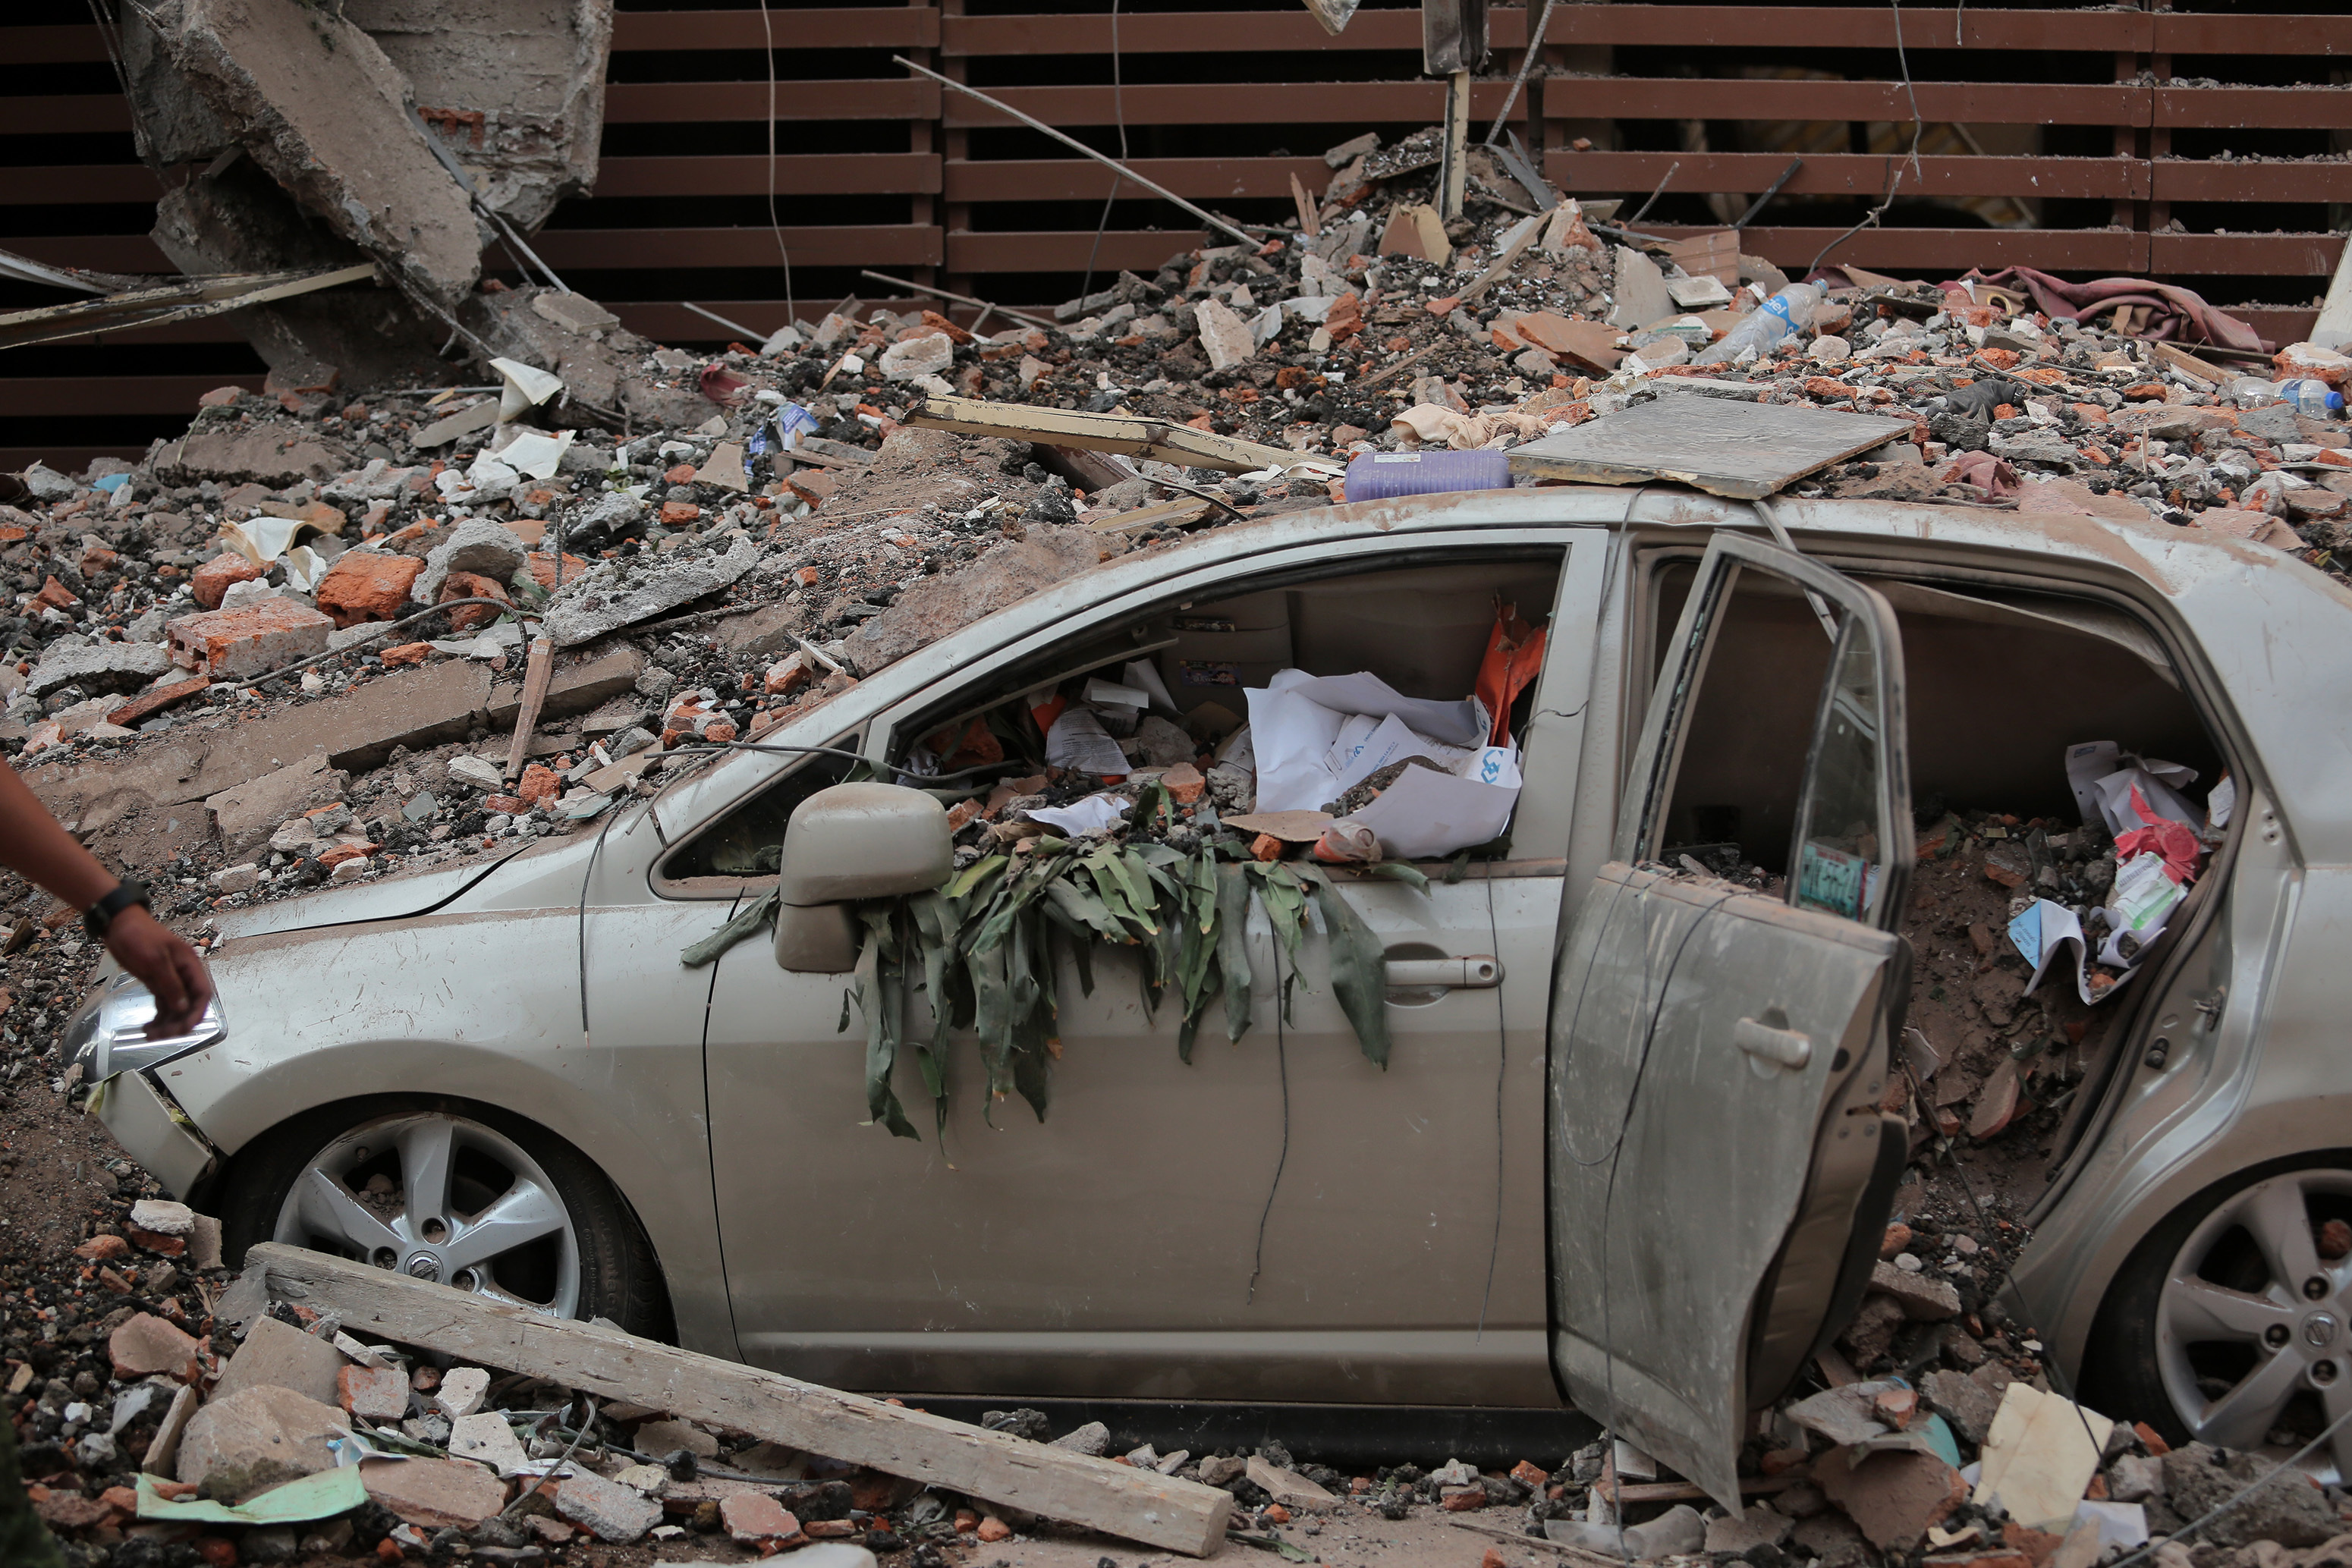 Slide 5 of 42: MEXICO CITY, MEXICO - SEPTEMBER 19: A car is seen destroyed because of the rubble from a building knocked down by a magnitude 7.1 earthquake that jolted central Mexico damaging buildings, knocking out power and causing alarm throughout the capital on September 19, 2017 in Mexico City, Mexico. The earthquake comes 32 years after a magnitude-8.0 earthquake hit on September 19, 1985. (Photo by Hector Vivas/Getty Images)